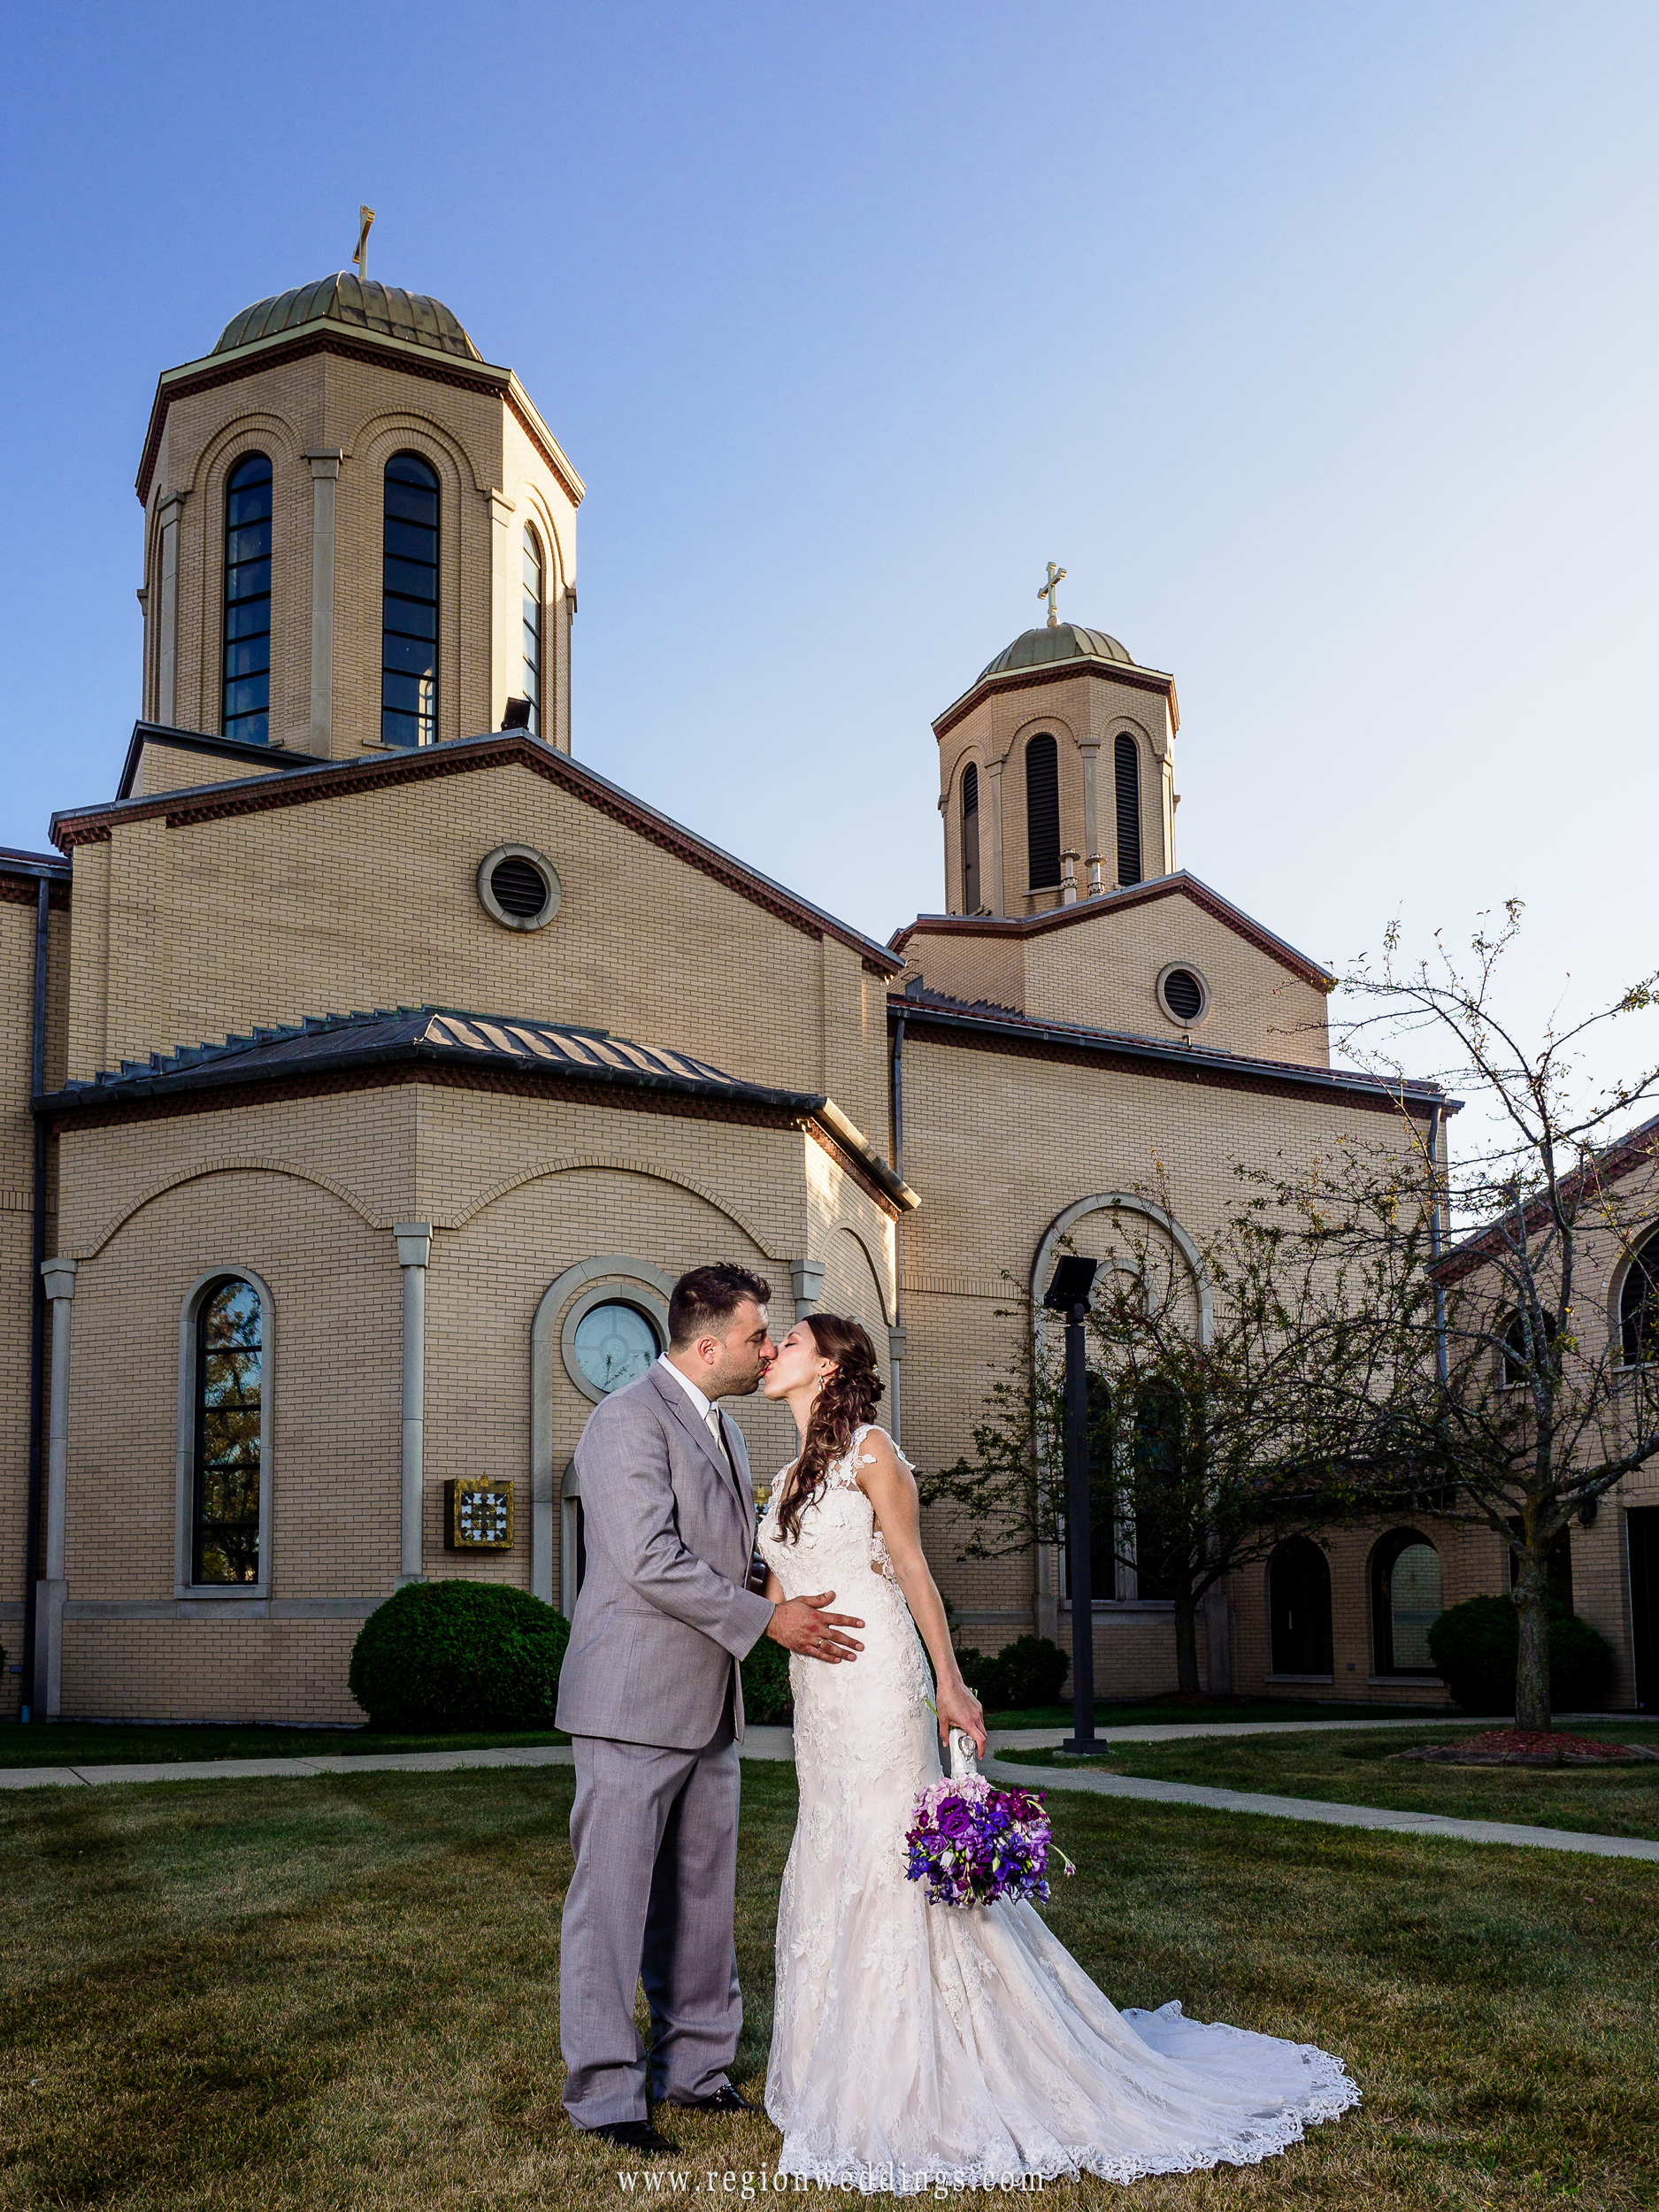 Bride and groom kiss in front of church in Lansing, Illinois.